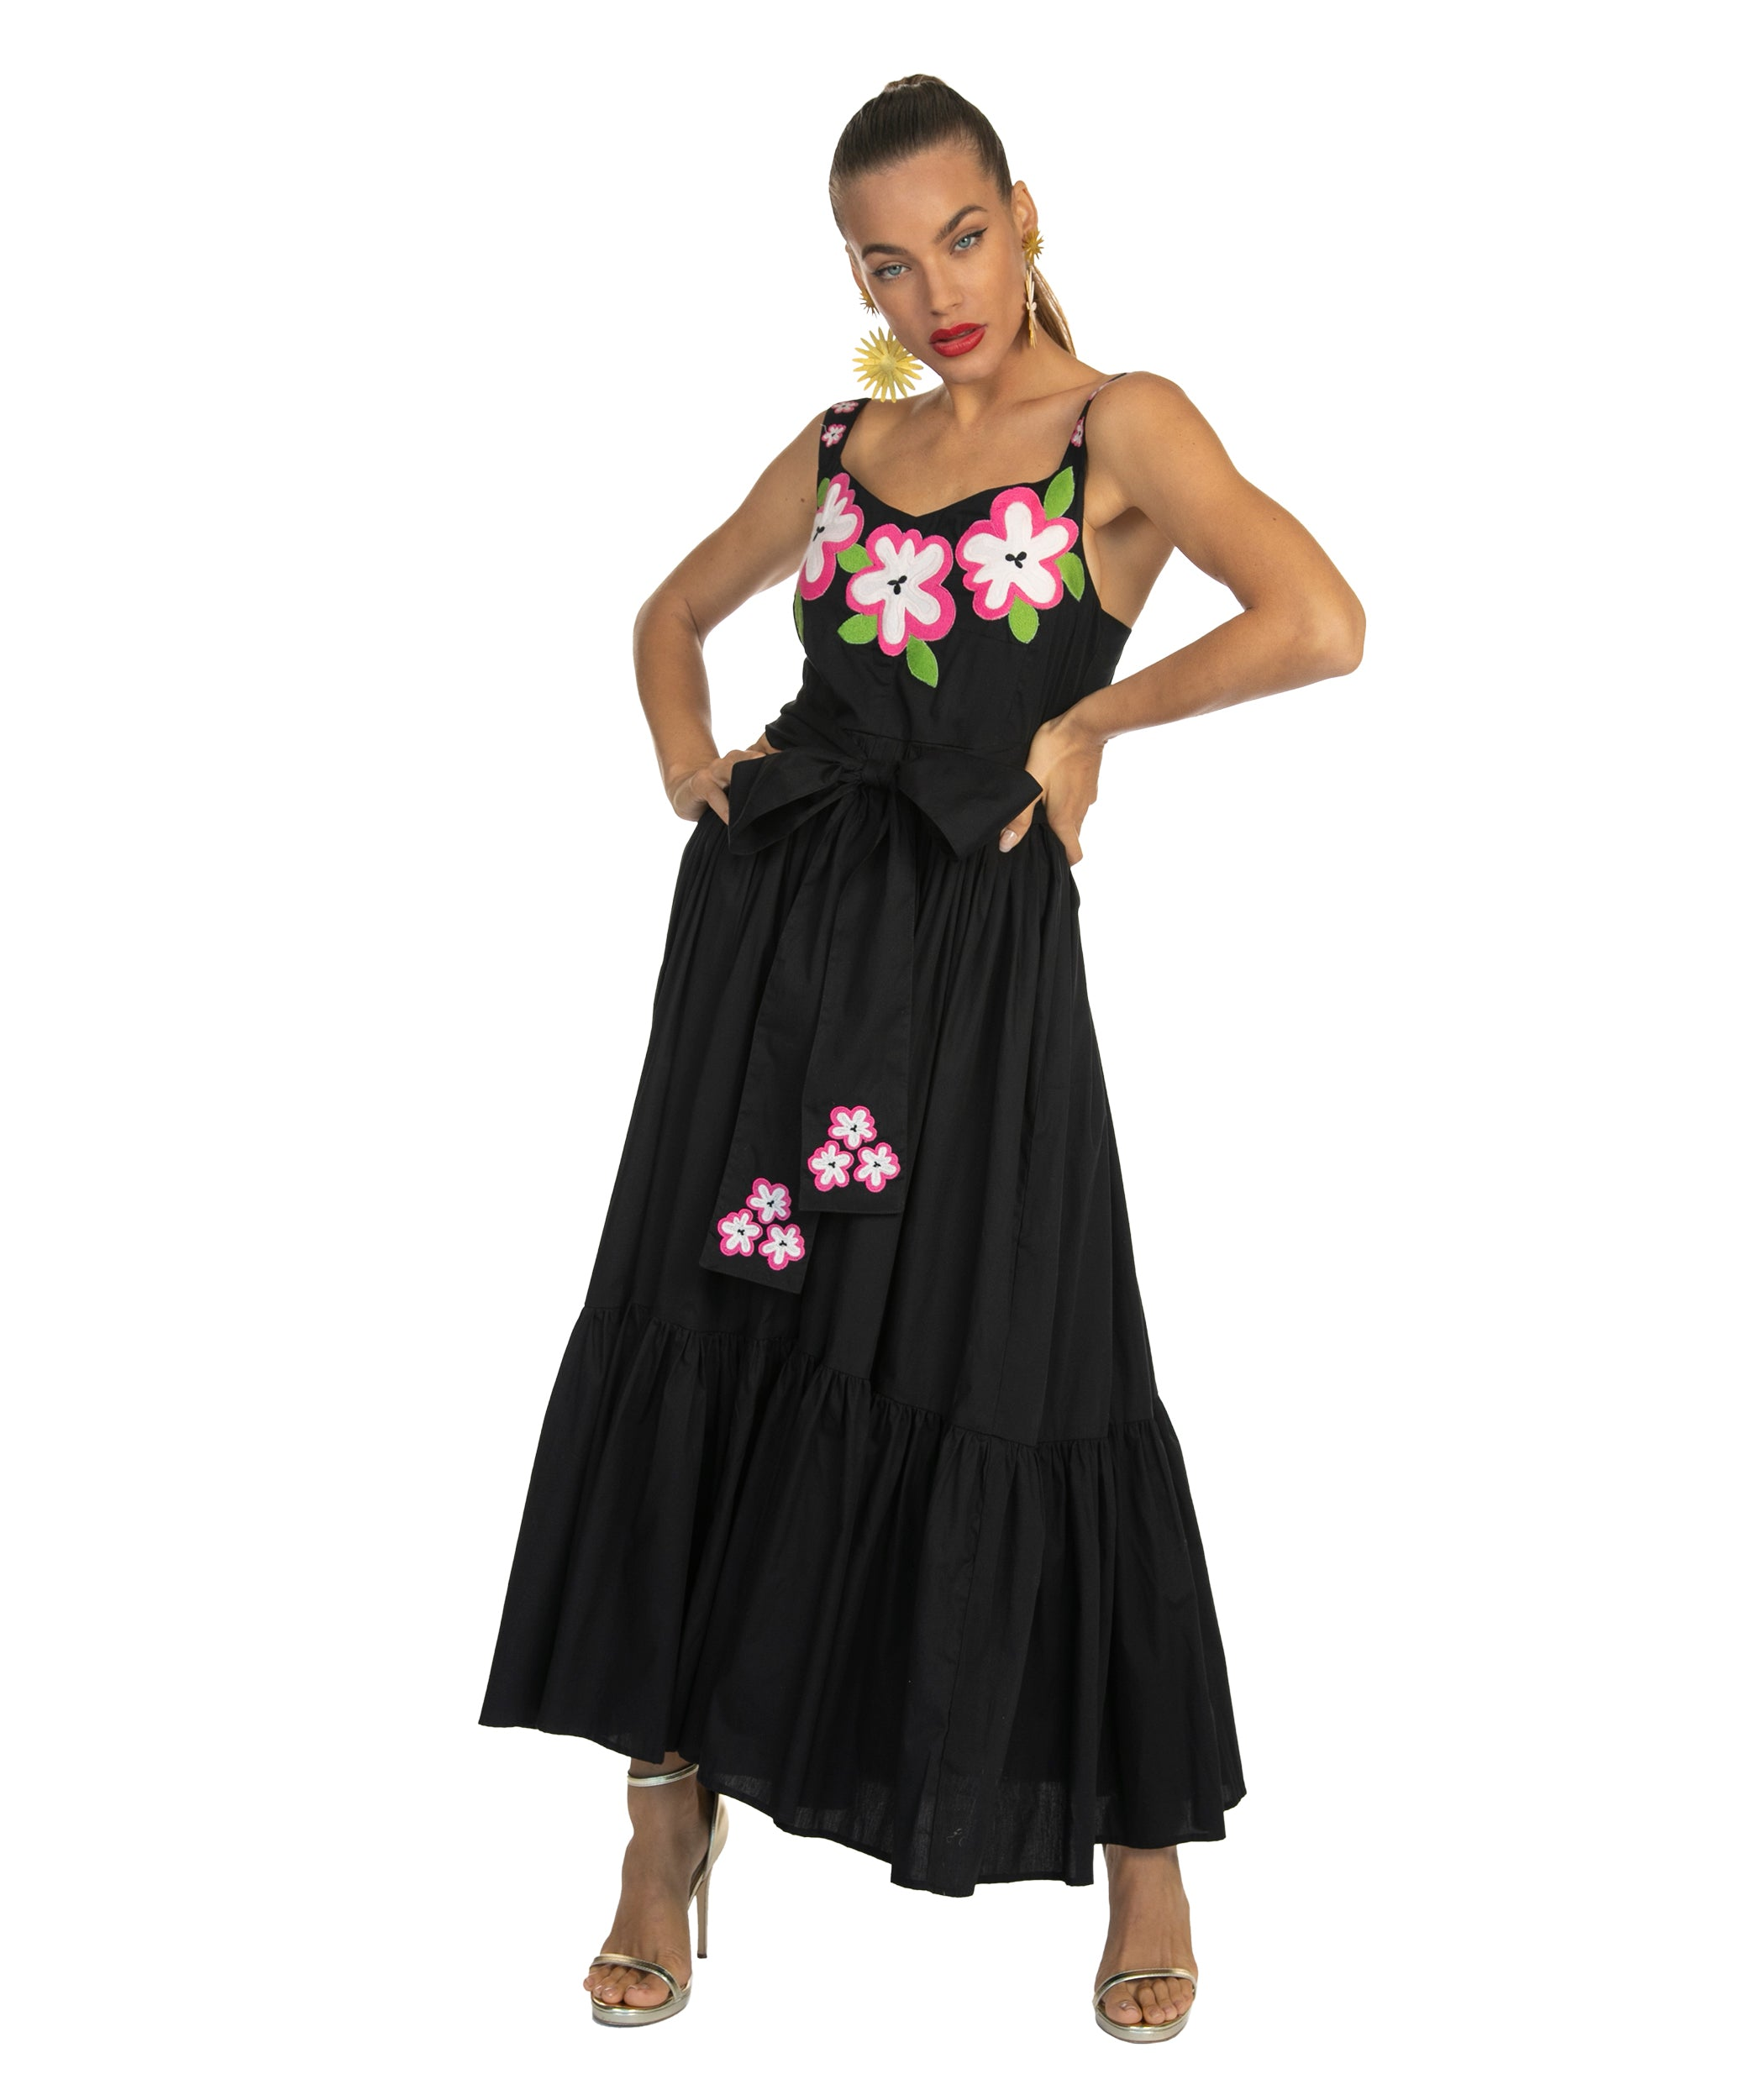 The Black Havana Tie Dress by Bonita Collective